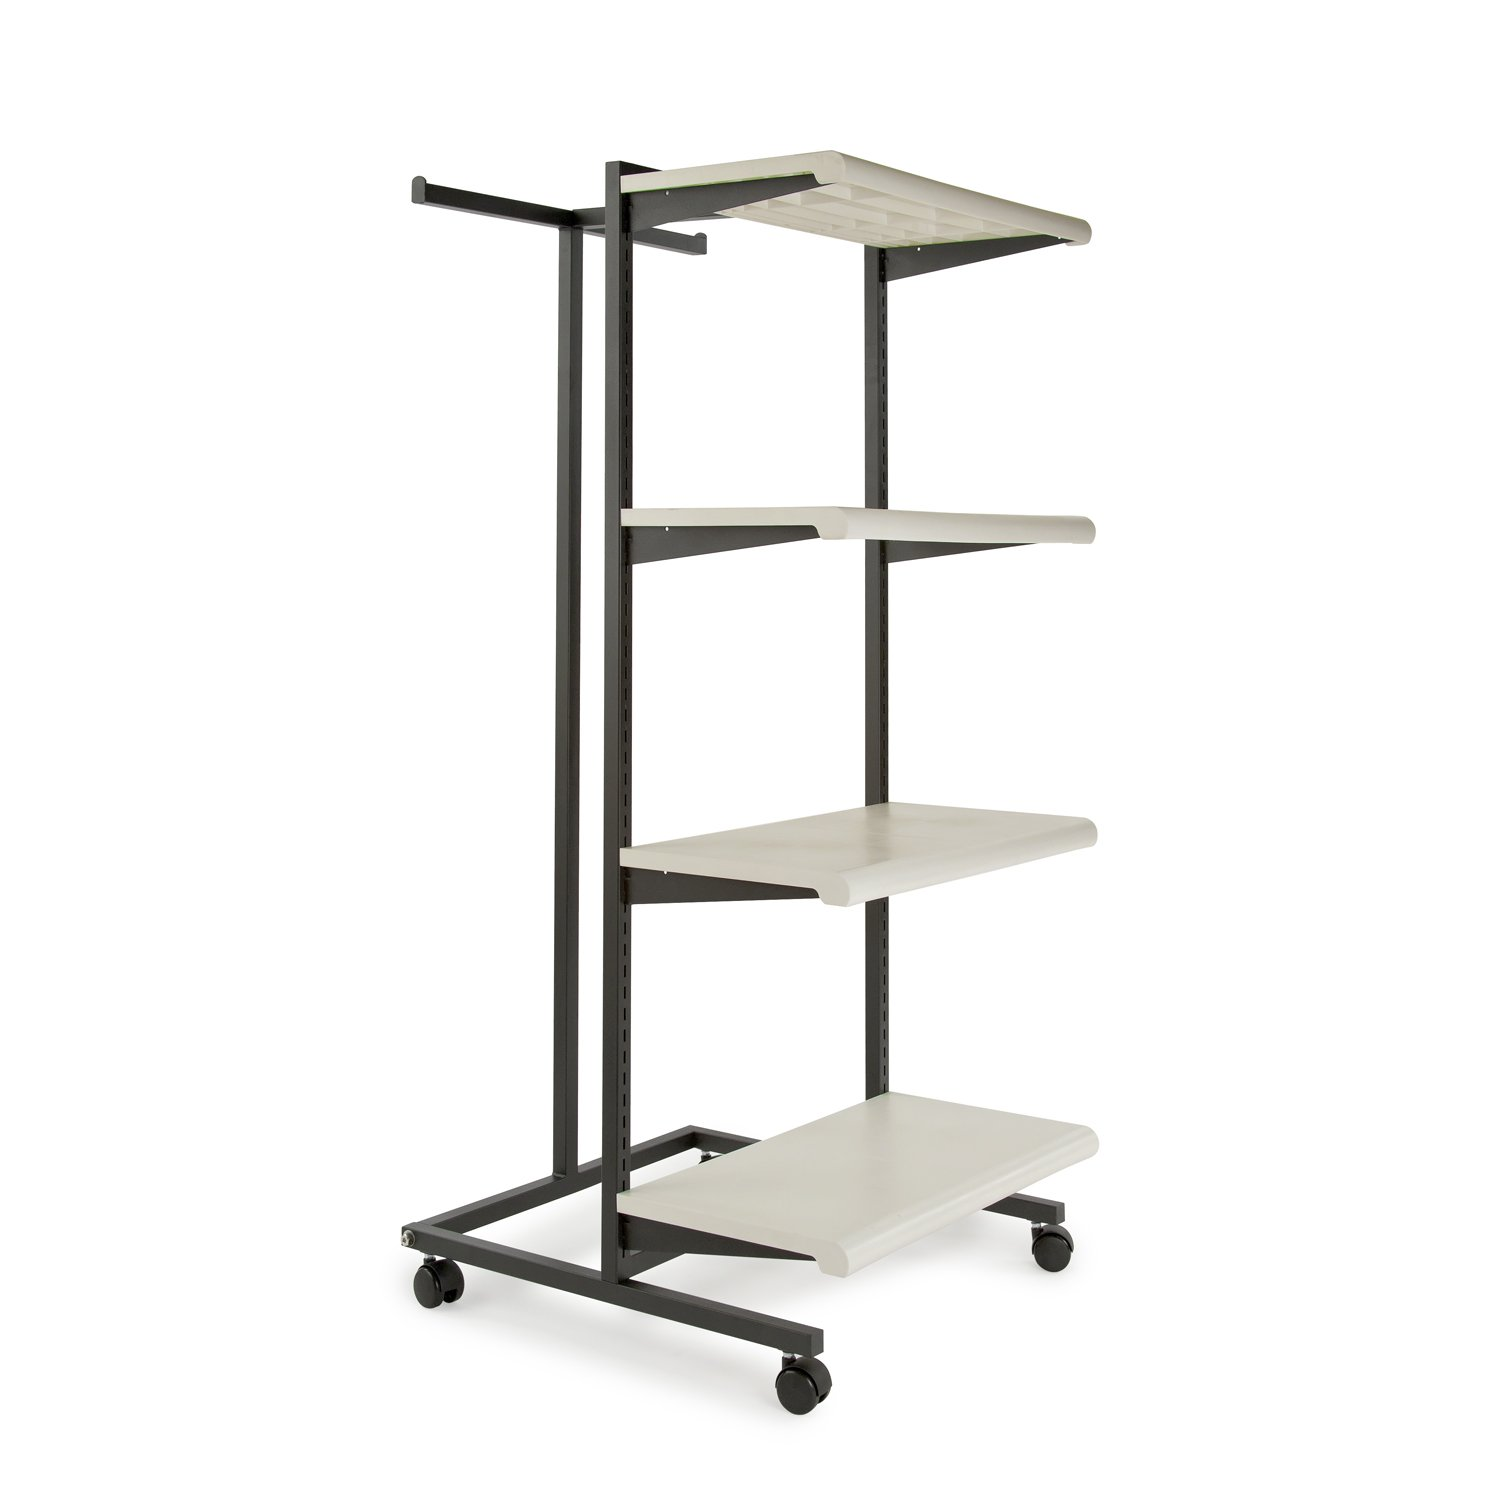 Econoco K410/W Frame with 4''-24'' Shelves and 1 T-Stand, 1'' Square Tubing, Matte, Black Frame with White Shelves